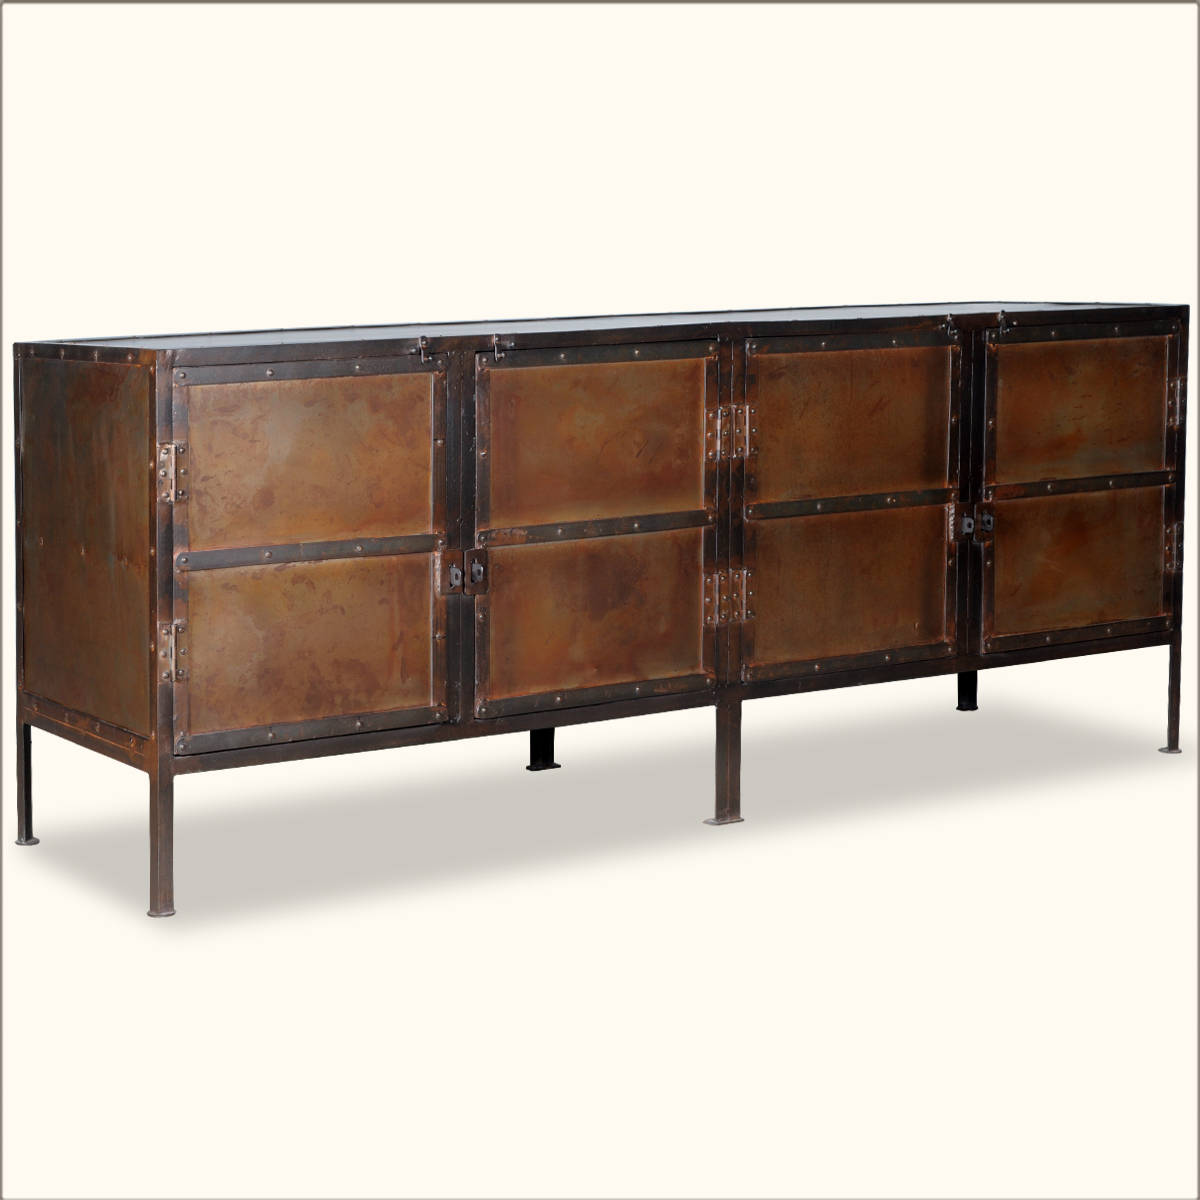 Industrial iron quot door rustic storage buffet sideboard